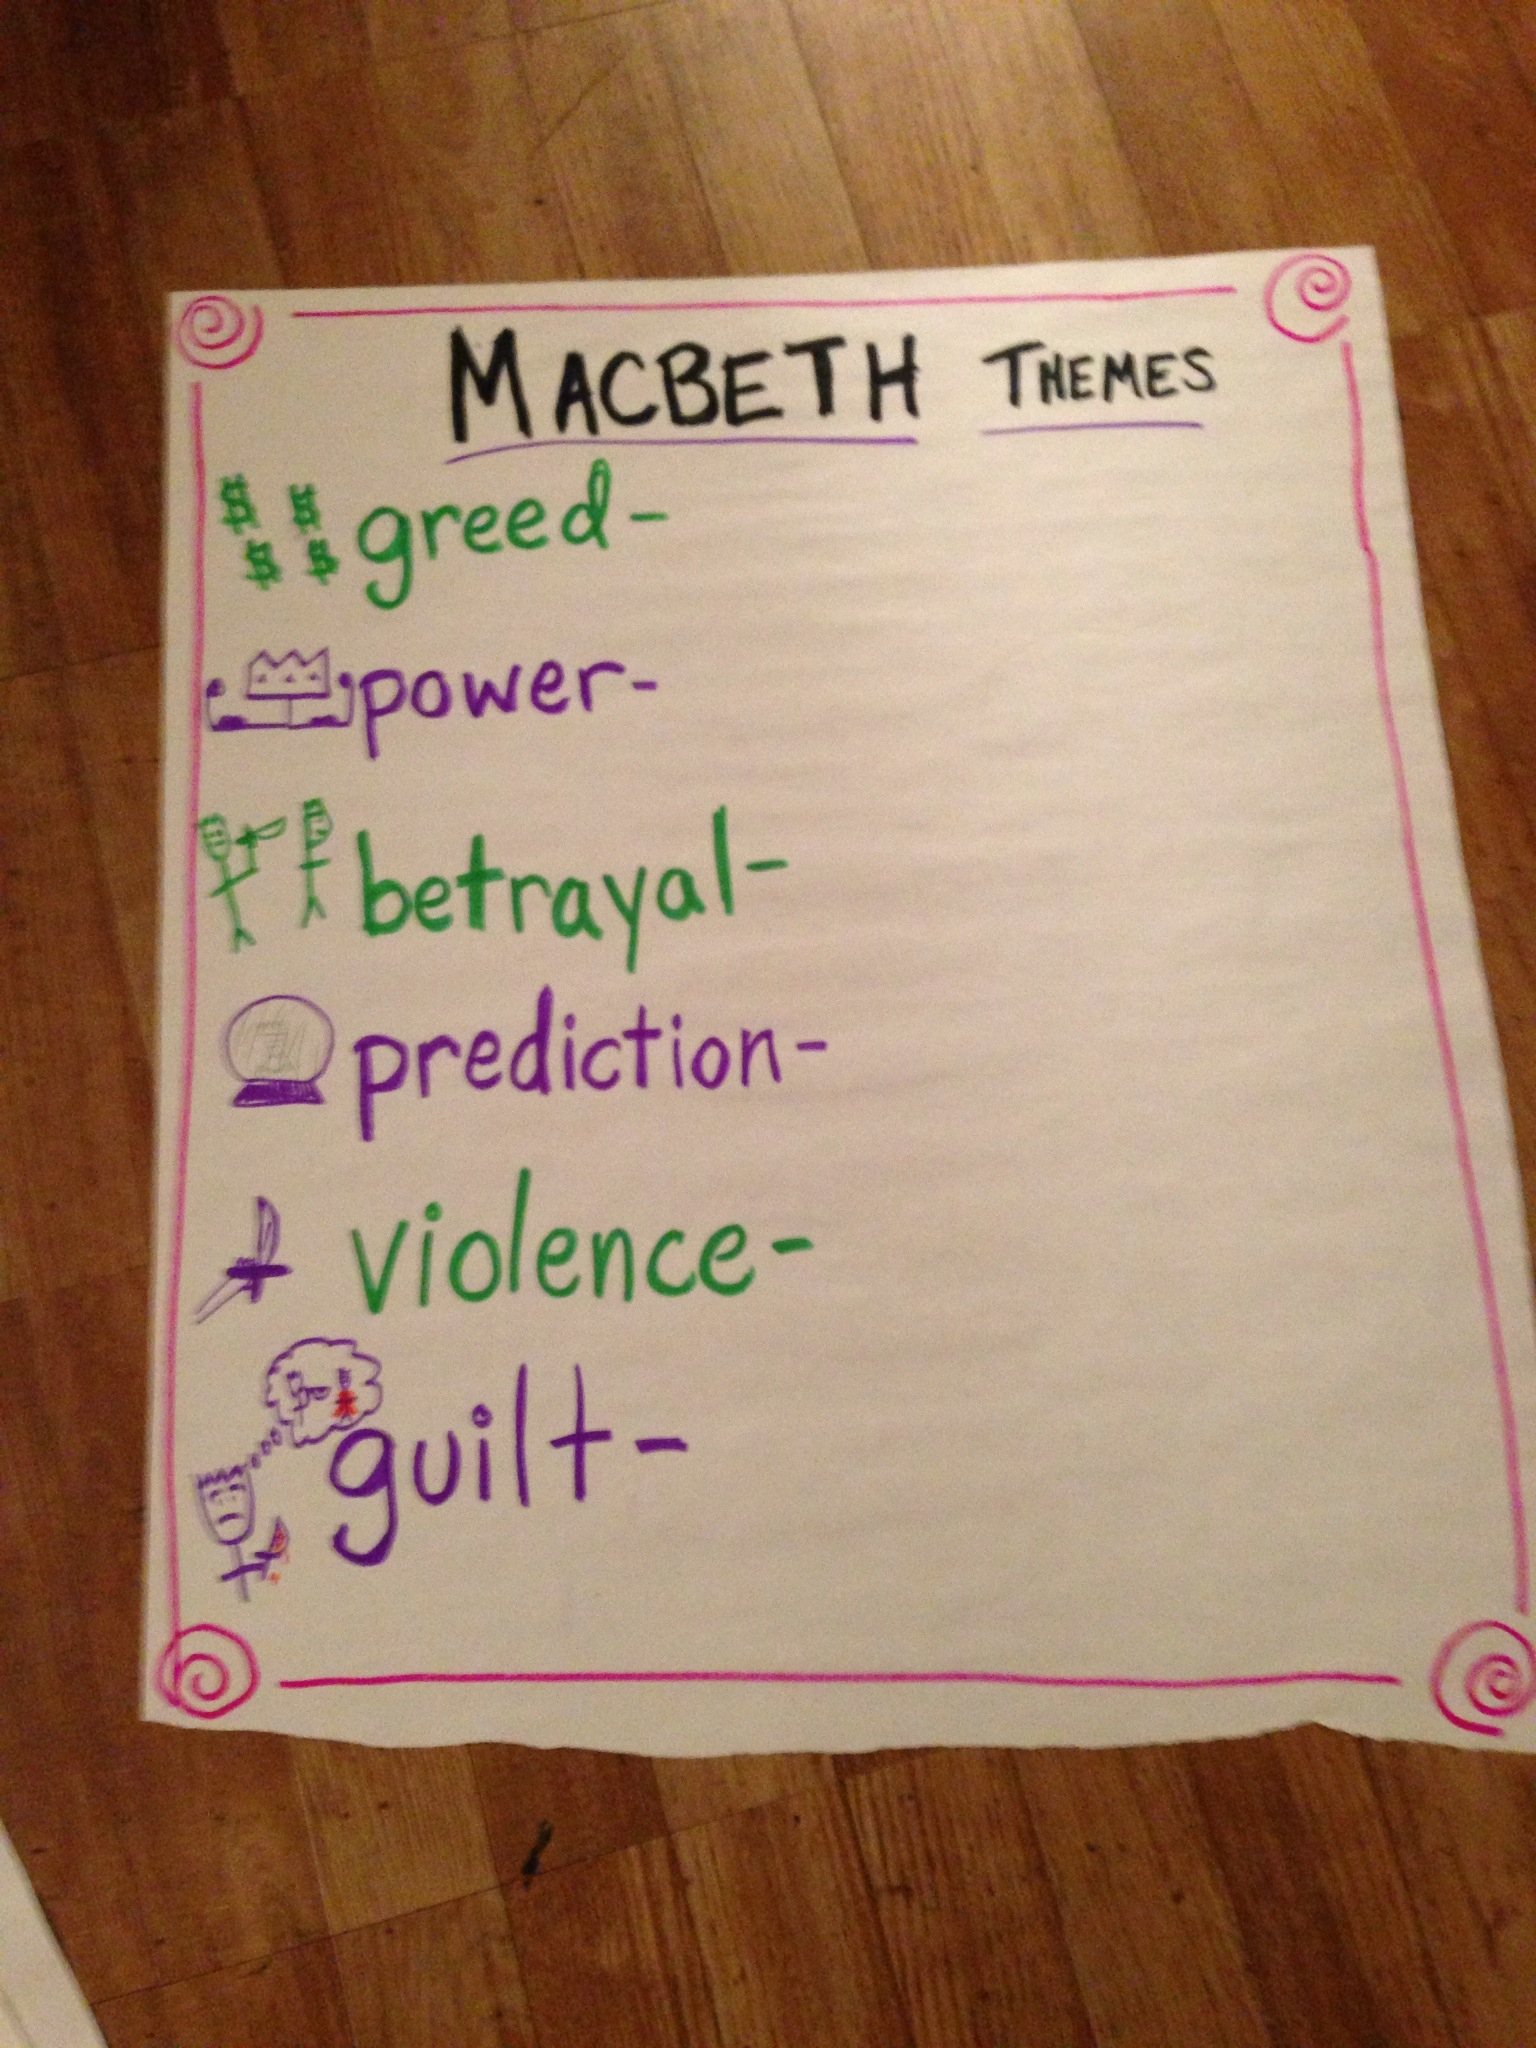 macbeths power in macbeth essay power essay even though shakespeare's macbeth and ridley scott's gladiator are portrayed in completely different worlds, they both share the theme of power.